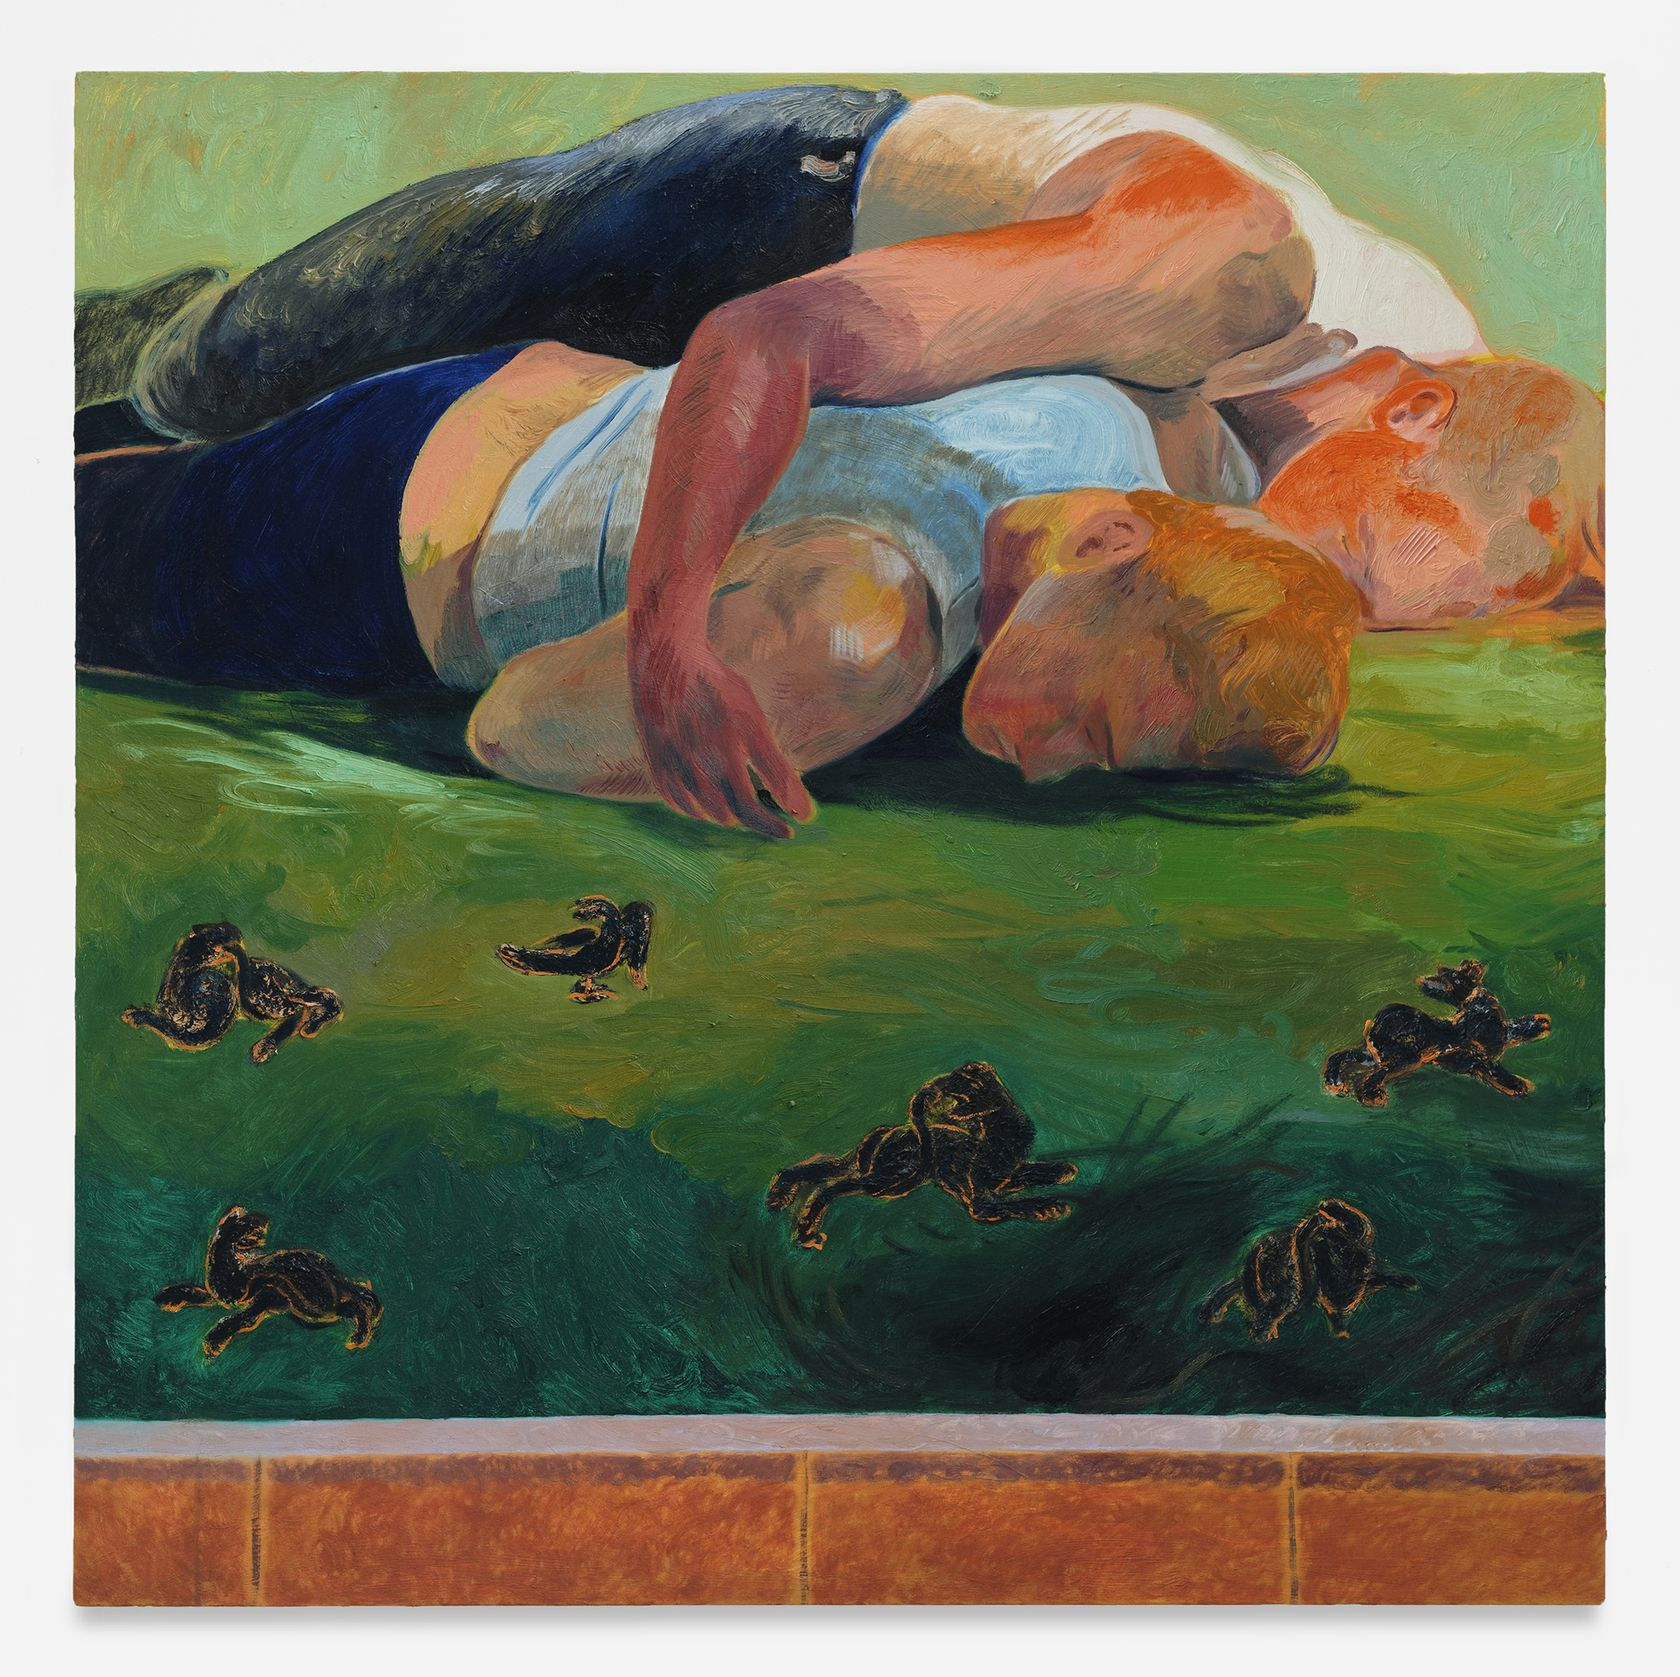 Anthony Cudahy, Rest (past), 2021 Huile sur toile122 × 122 cm / 48 × 48 in.